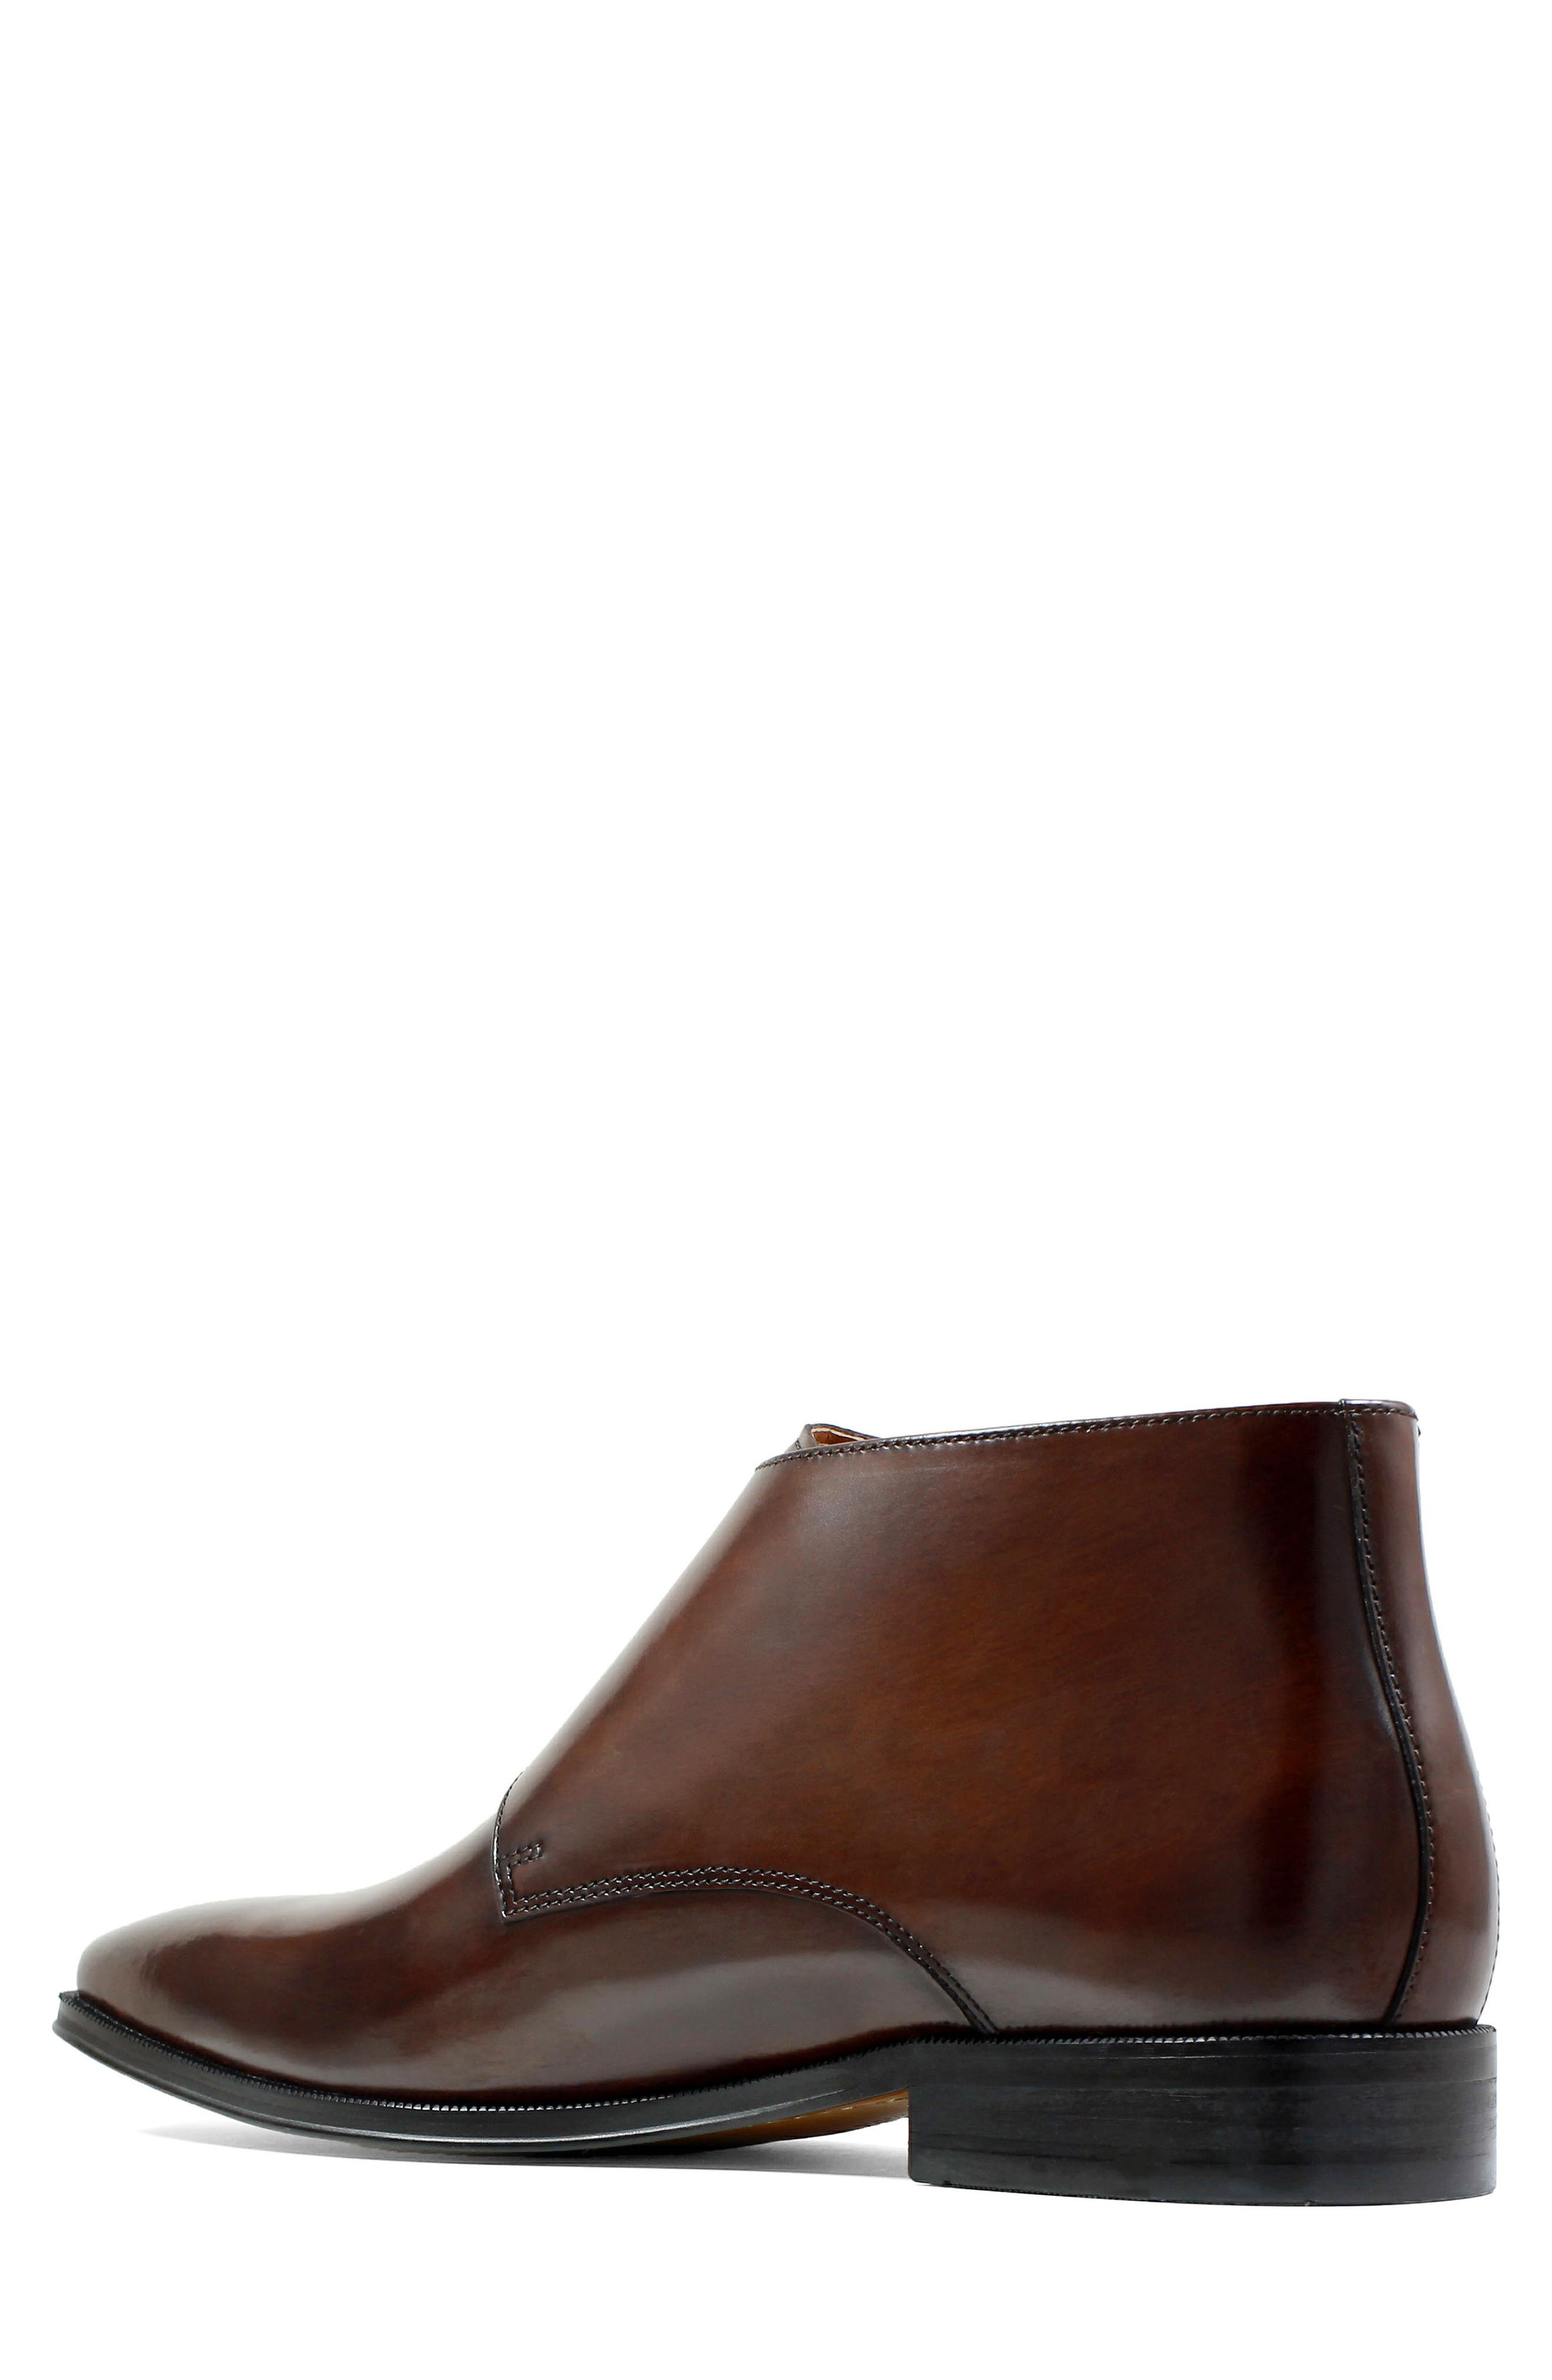 Belfast Double Monk Strap Boot,                             Alternate thumbnail 2, color,                             Brown Leather